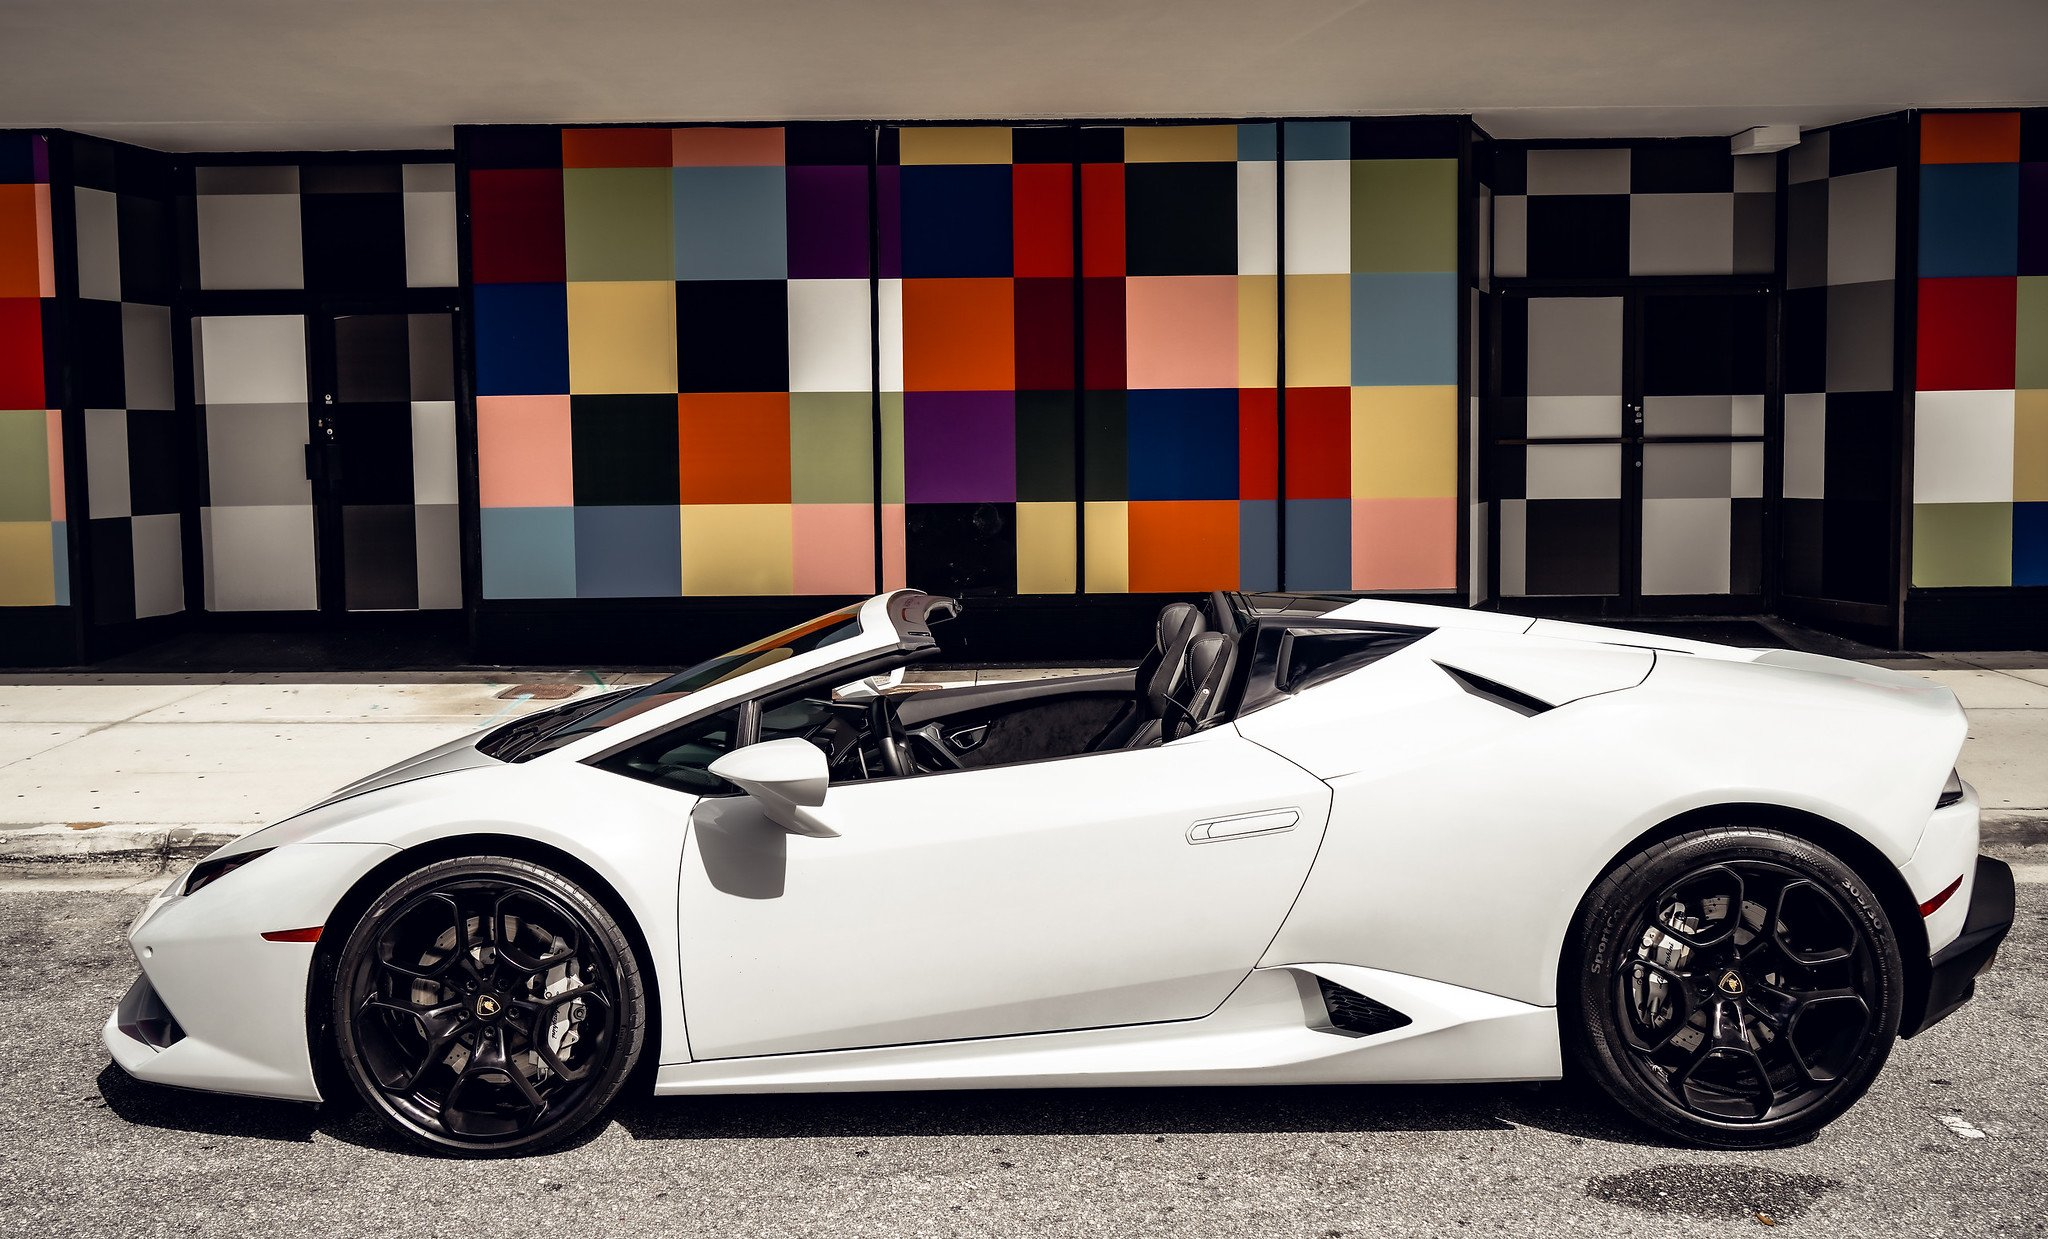 Image #11 of our  Lamborghini Huracan - White    In Miami Fort Lauderdale Palm Beach South Florida